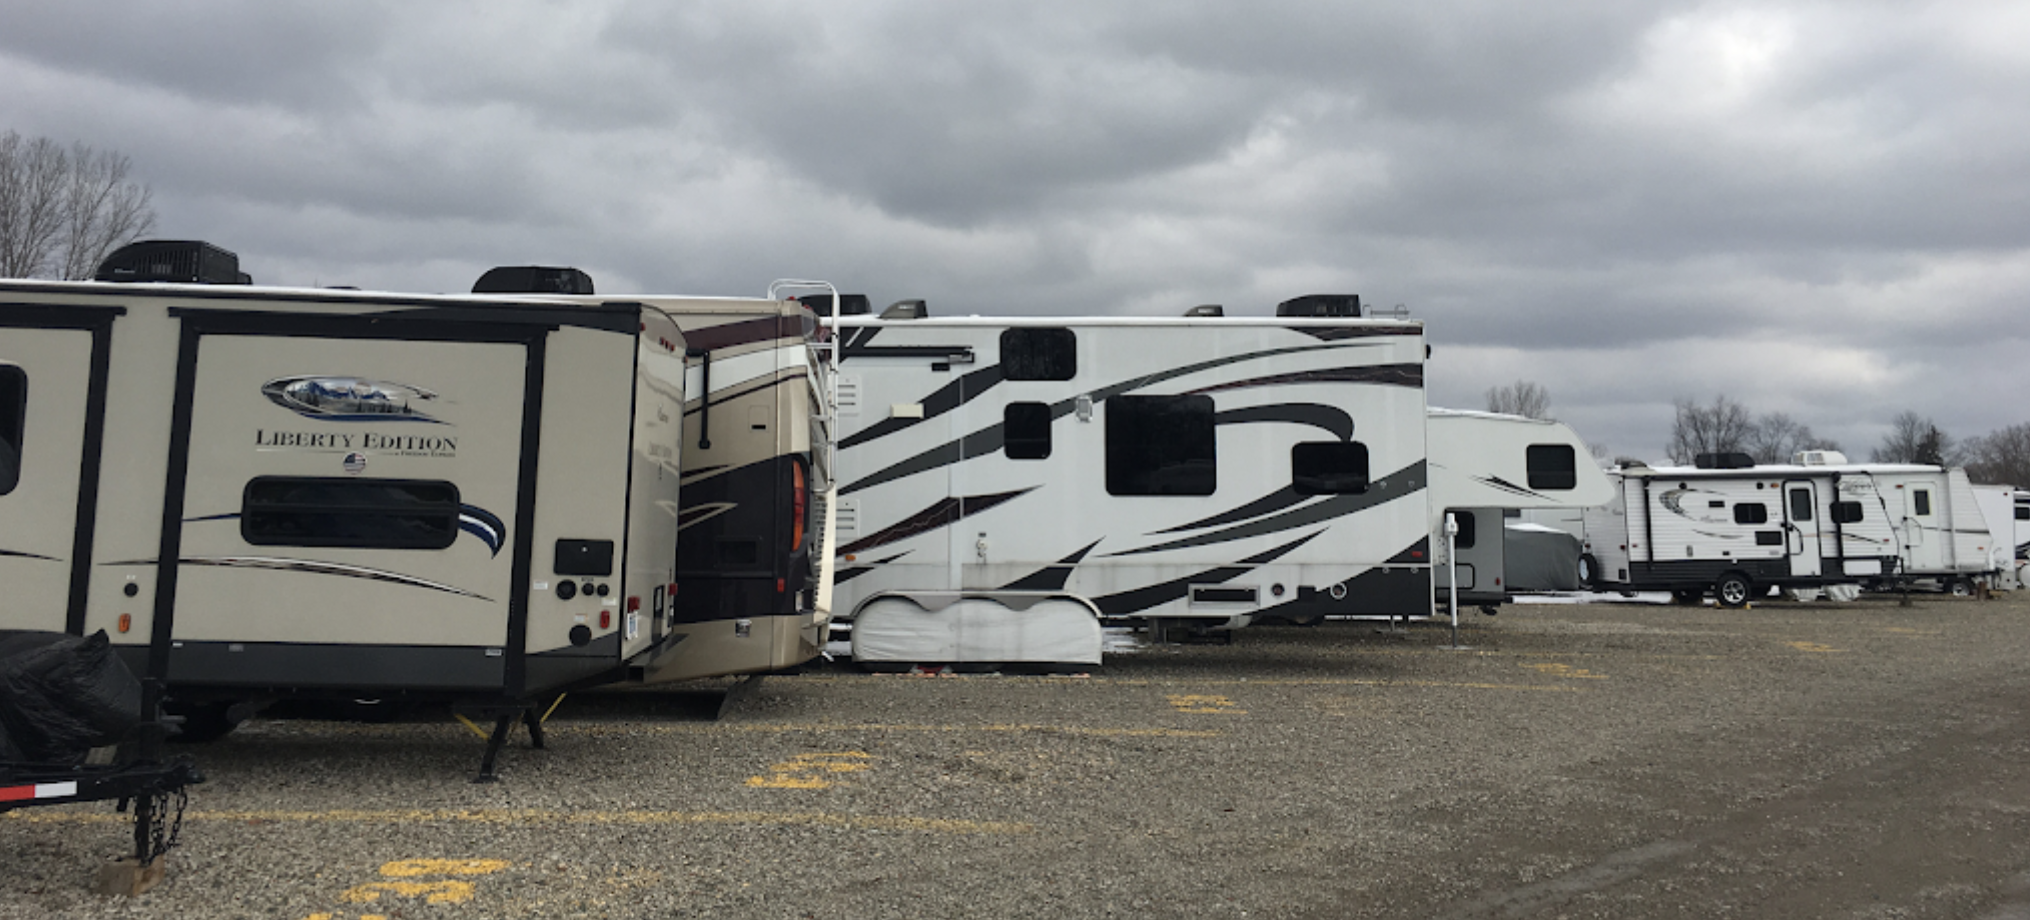 Uncovered RV Parking